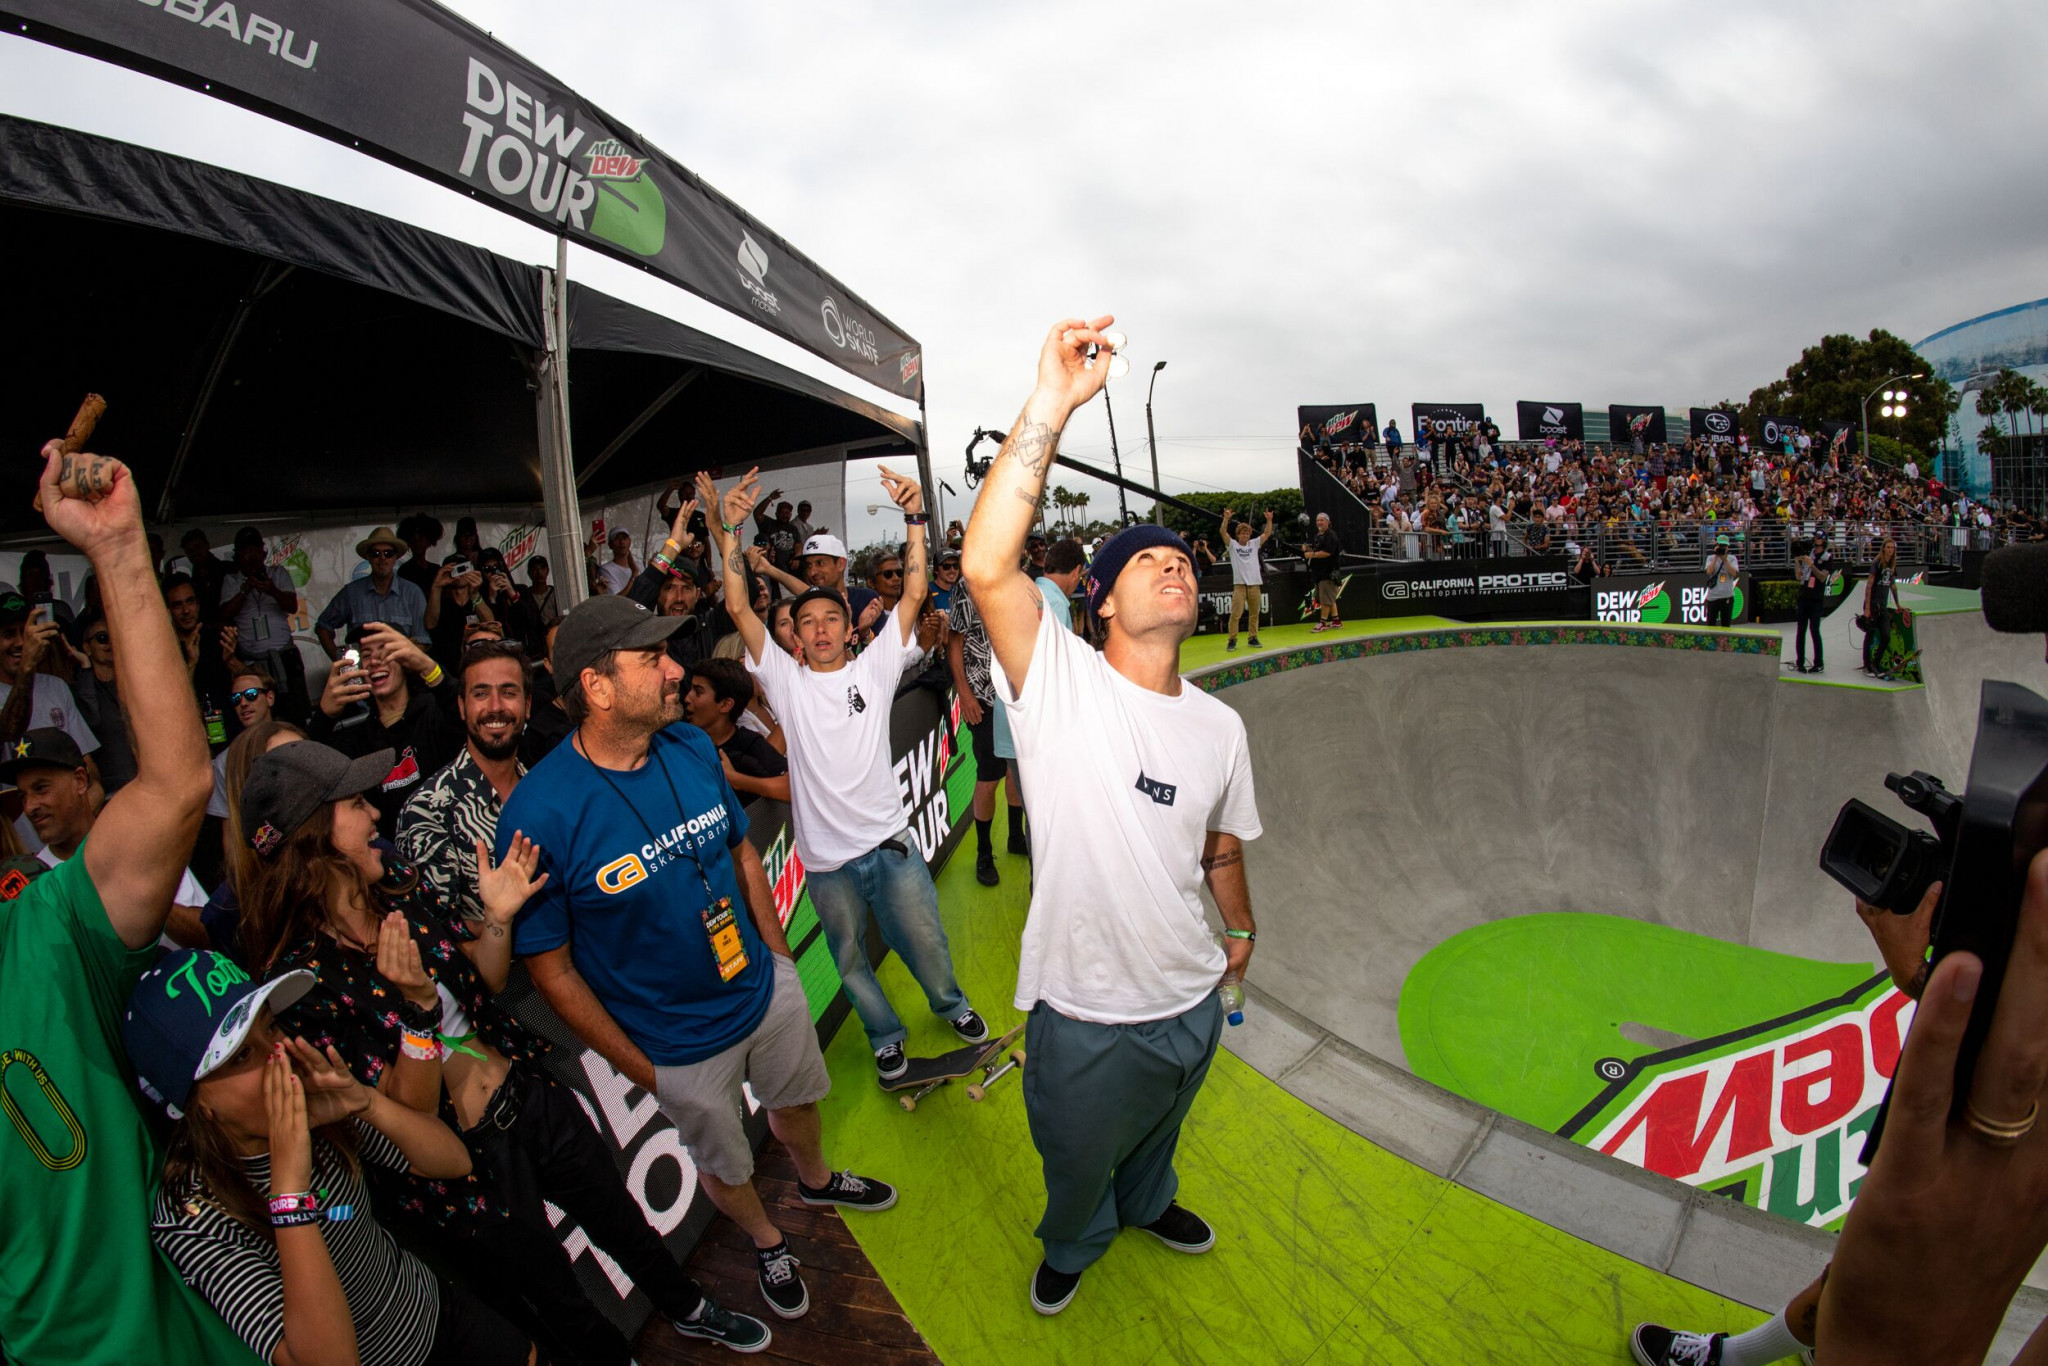 First Olympic skateboarding qualification event concludes in Long Beach